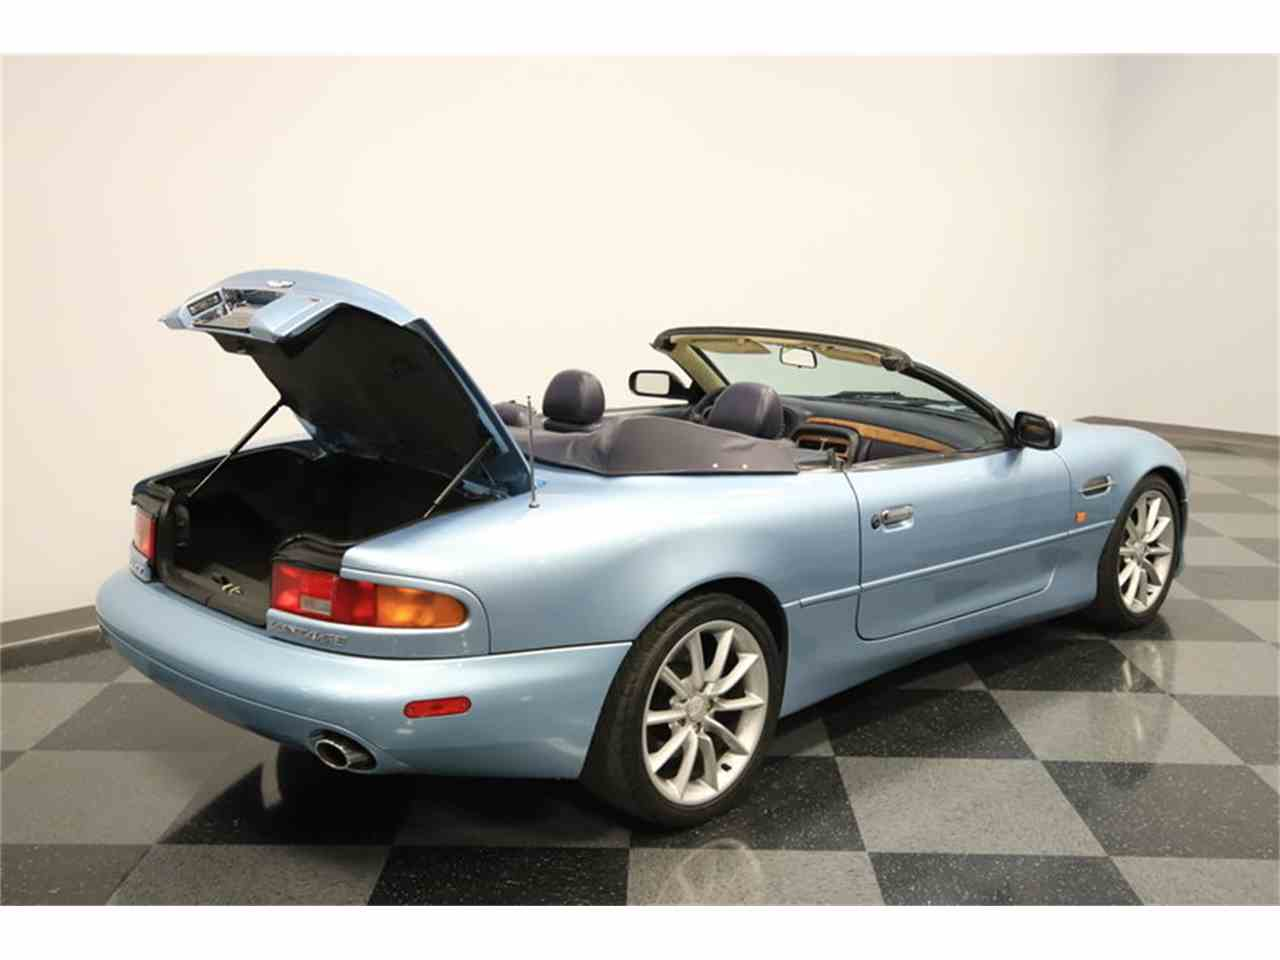 Large Picture of 2000 Aston Martin DB7 Vantage Volante Offered by Streetside Classics - Phoenix - M73B